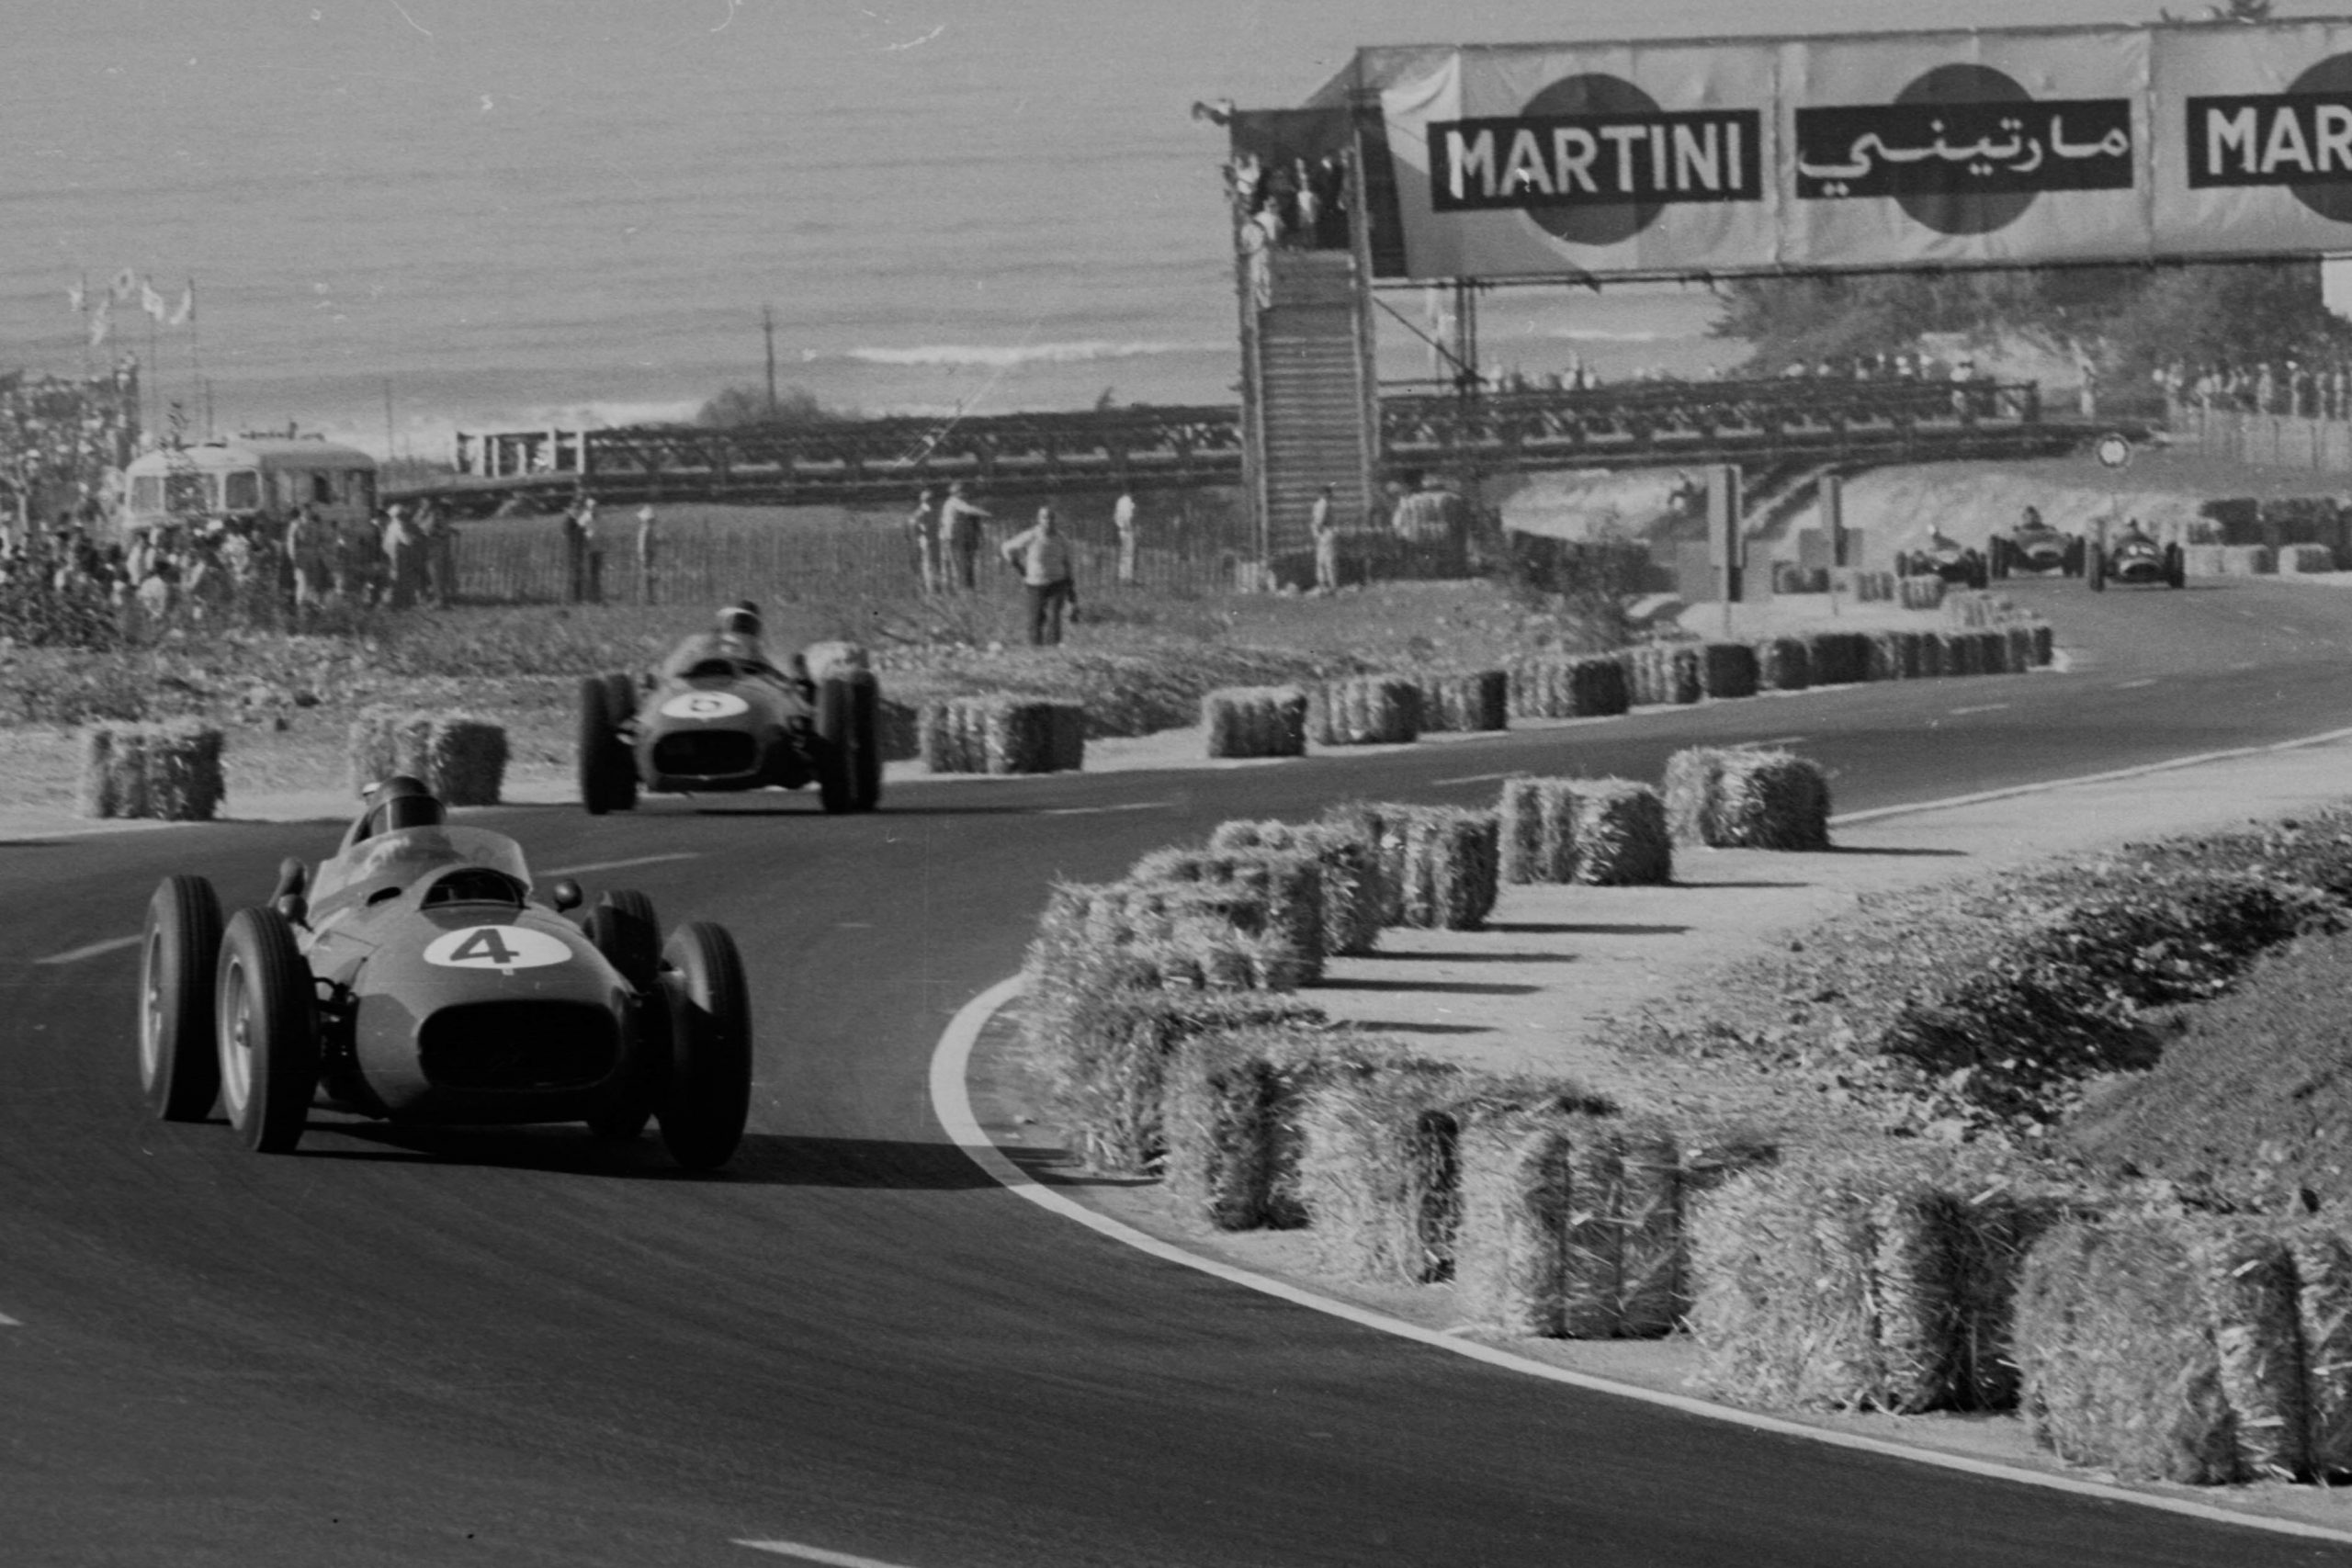 Phil Hill leads Mike Hawthorn in Ferrari Dino 246's.